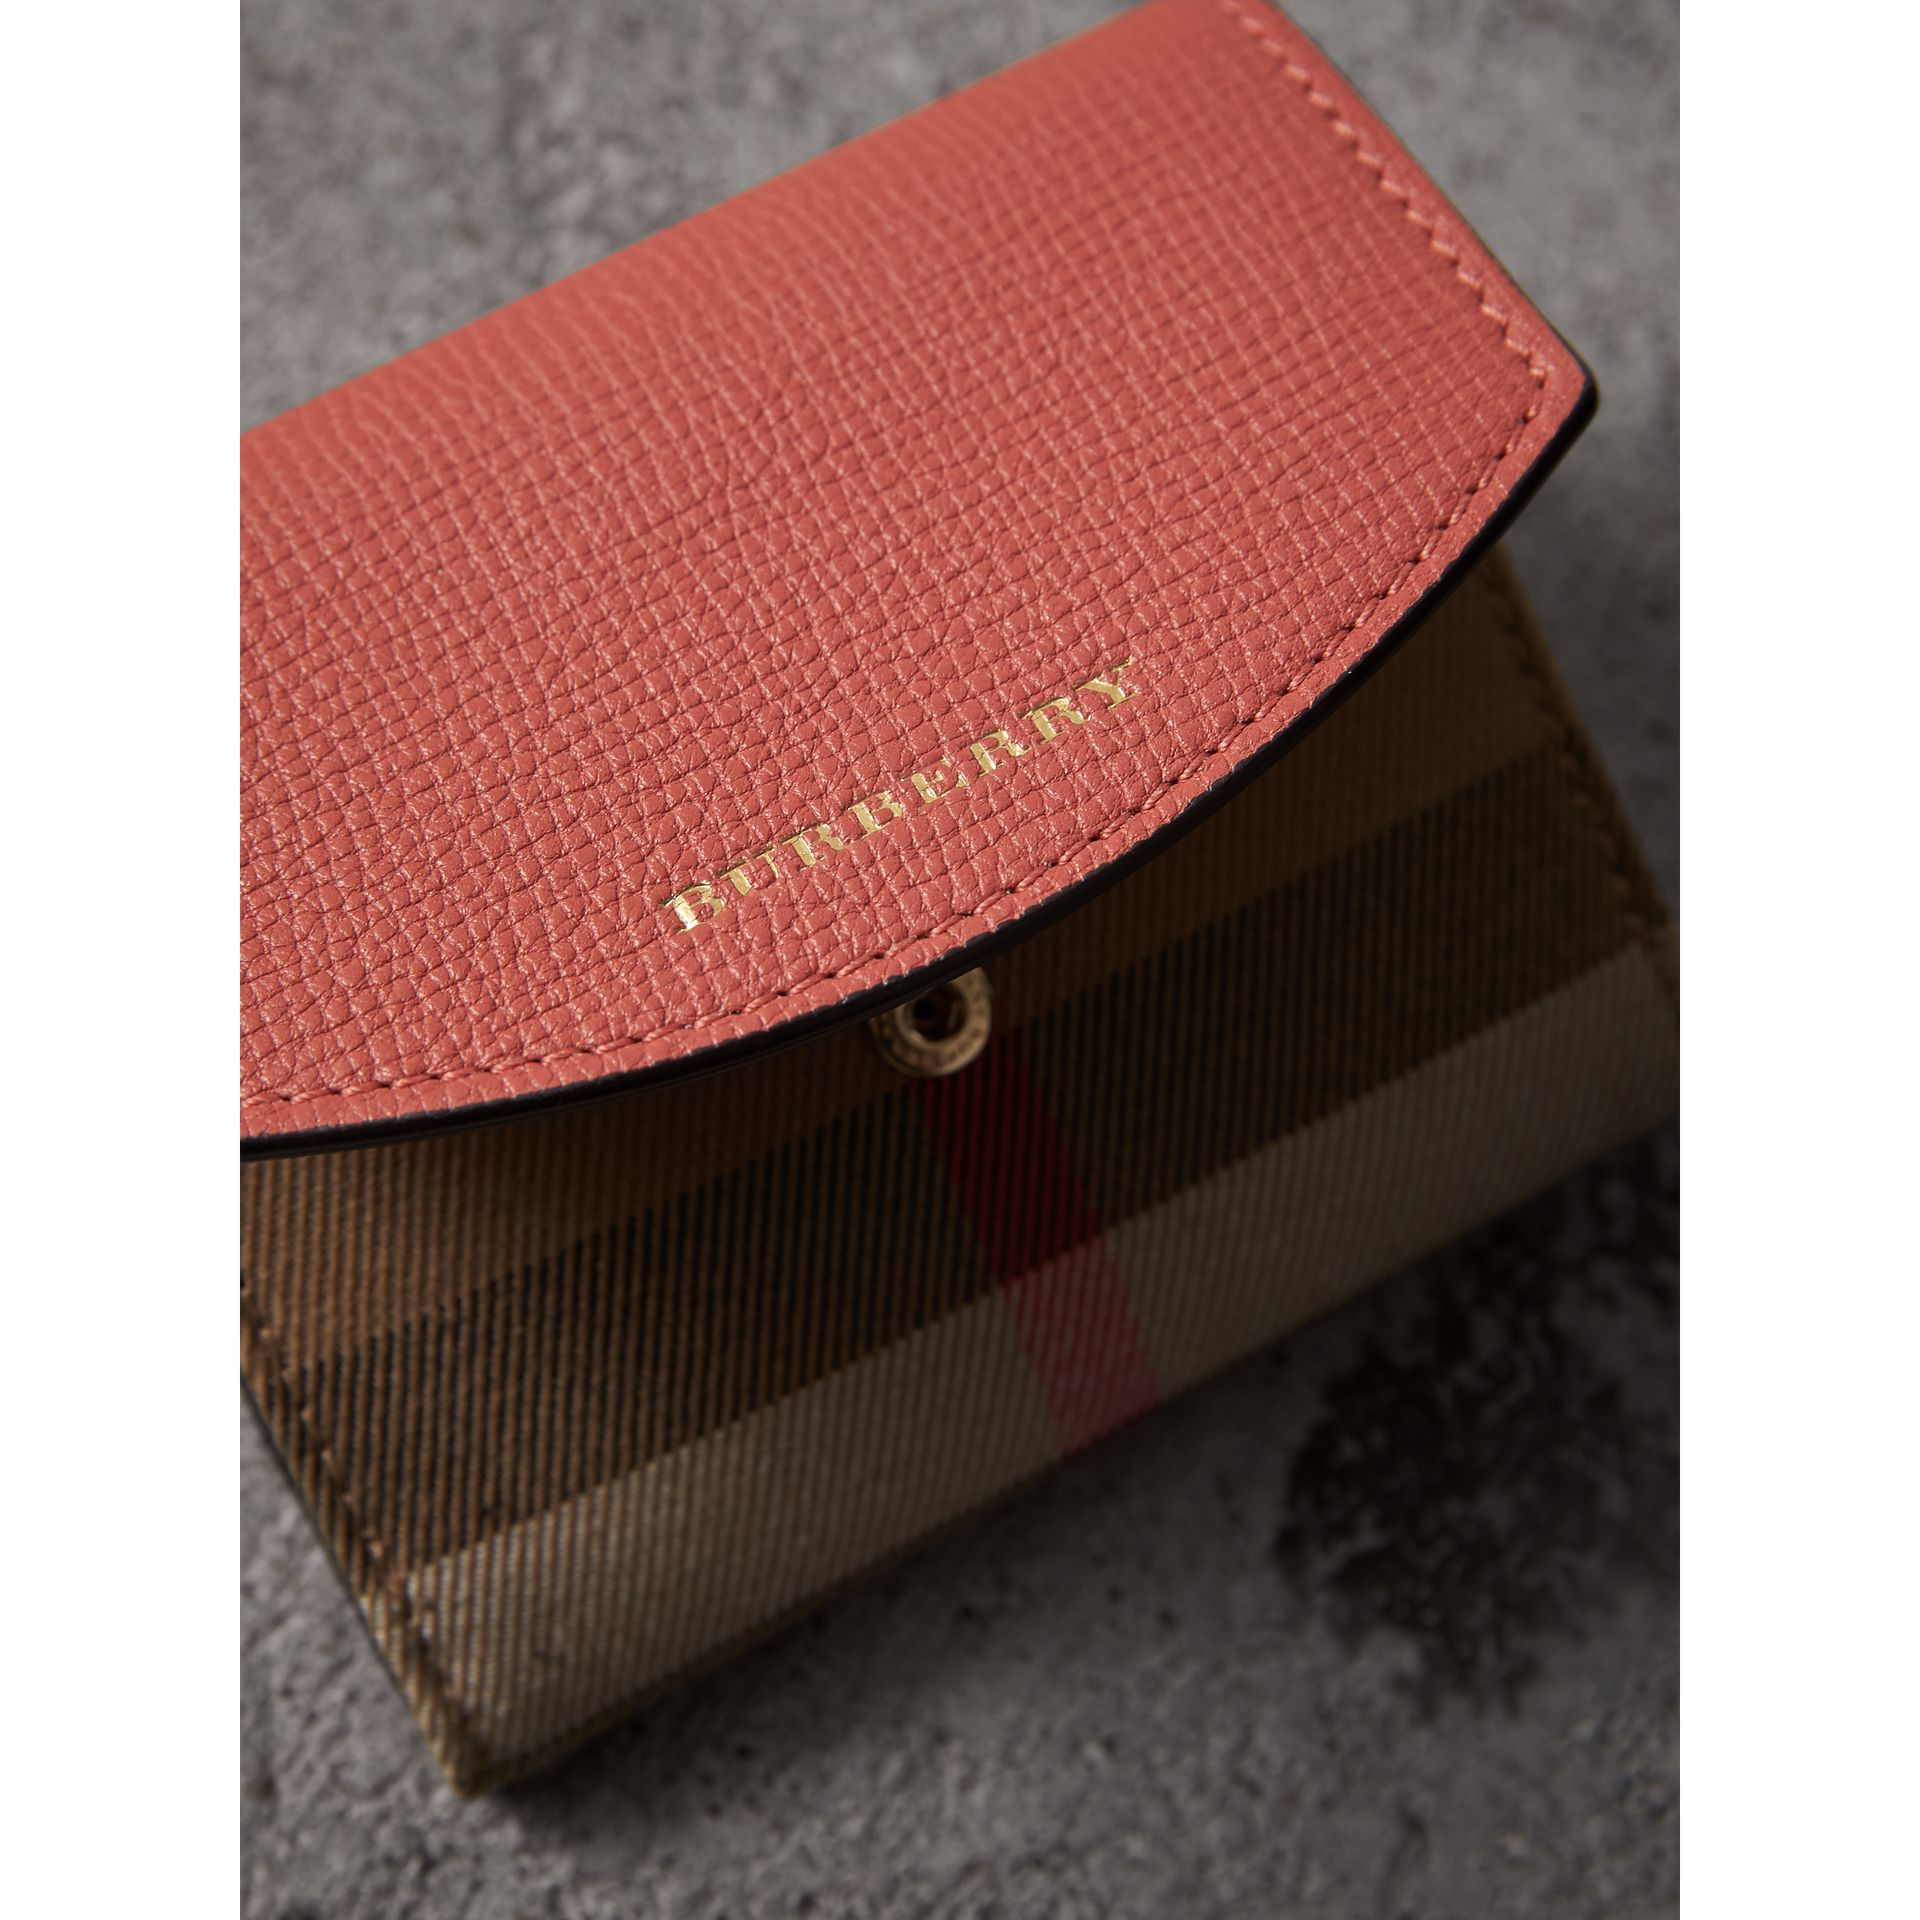 House Check and Leather Wallet in Cinnamon Red - Women | Burberry - gallery image 1